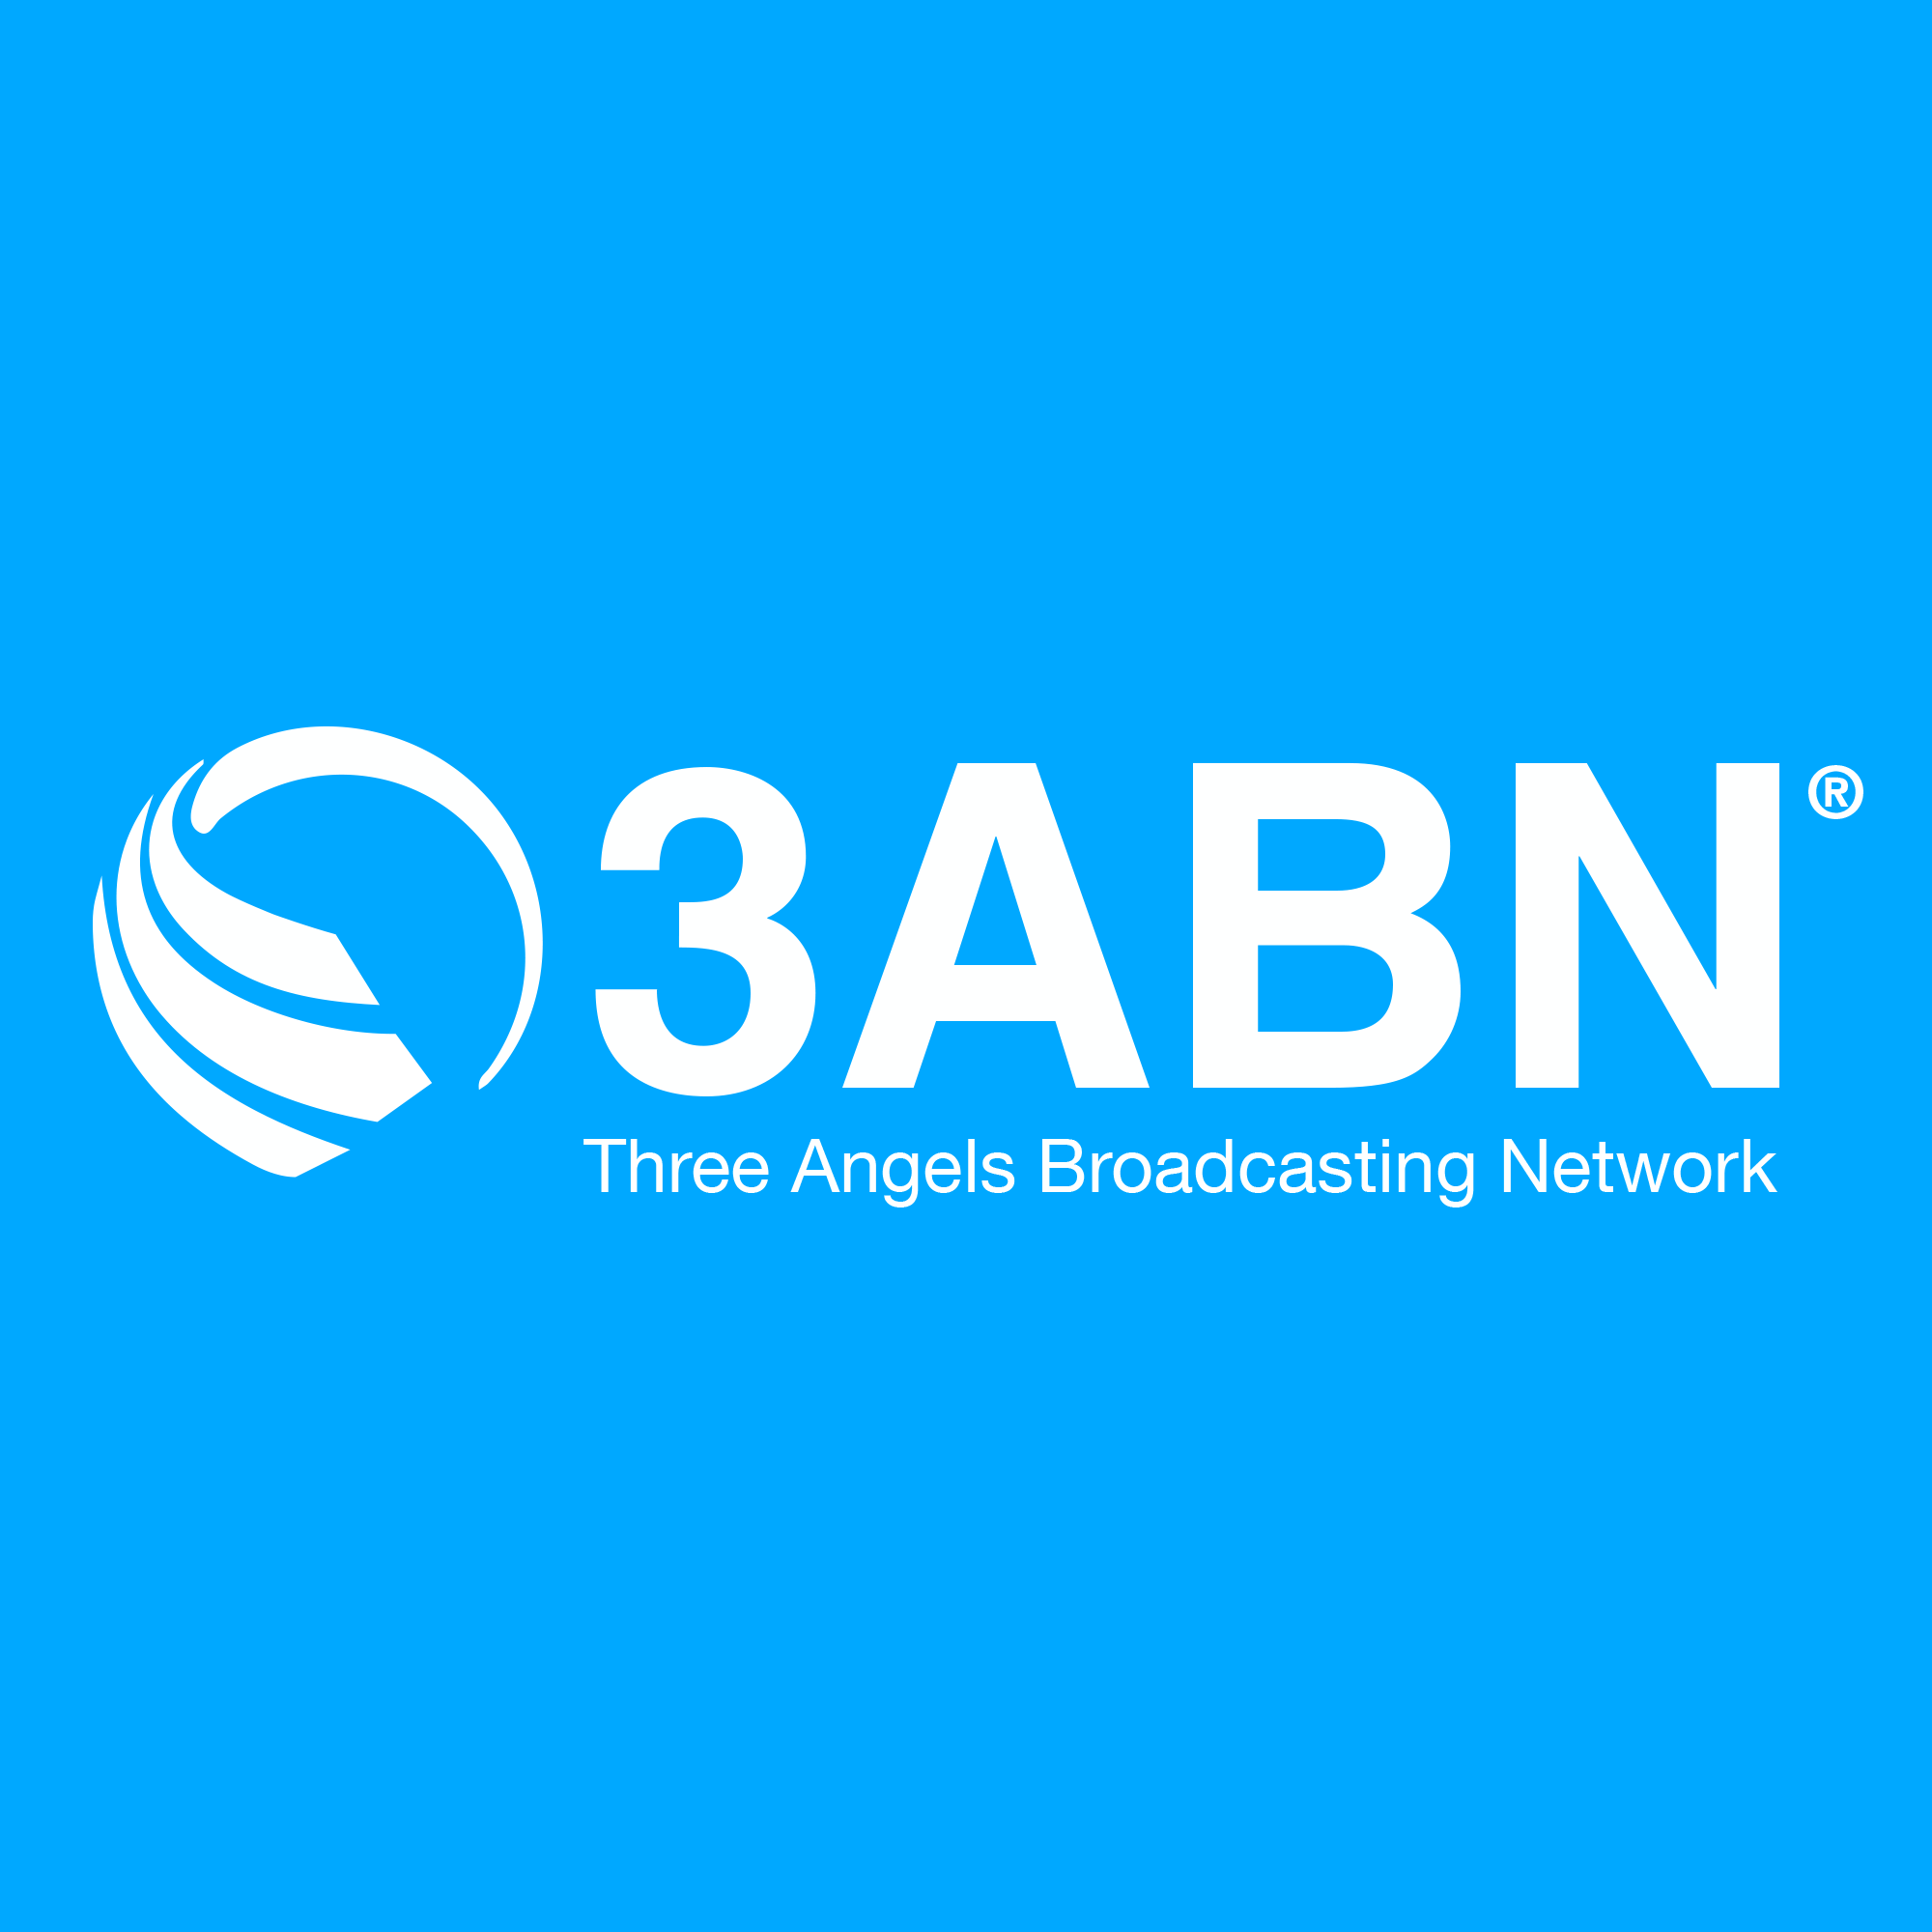 Three Angels Broadcasting Network